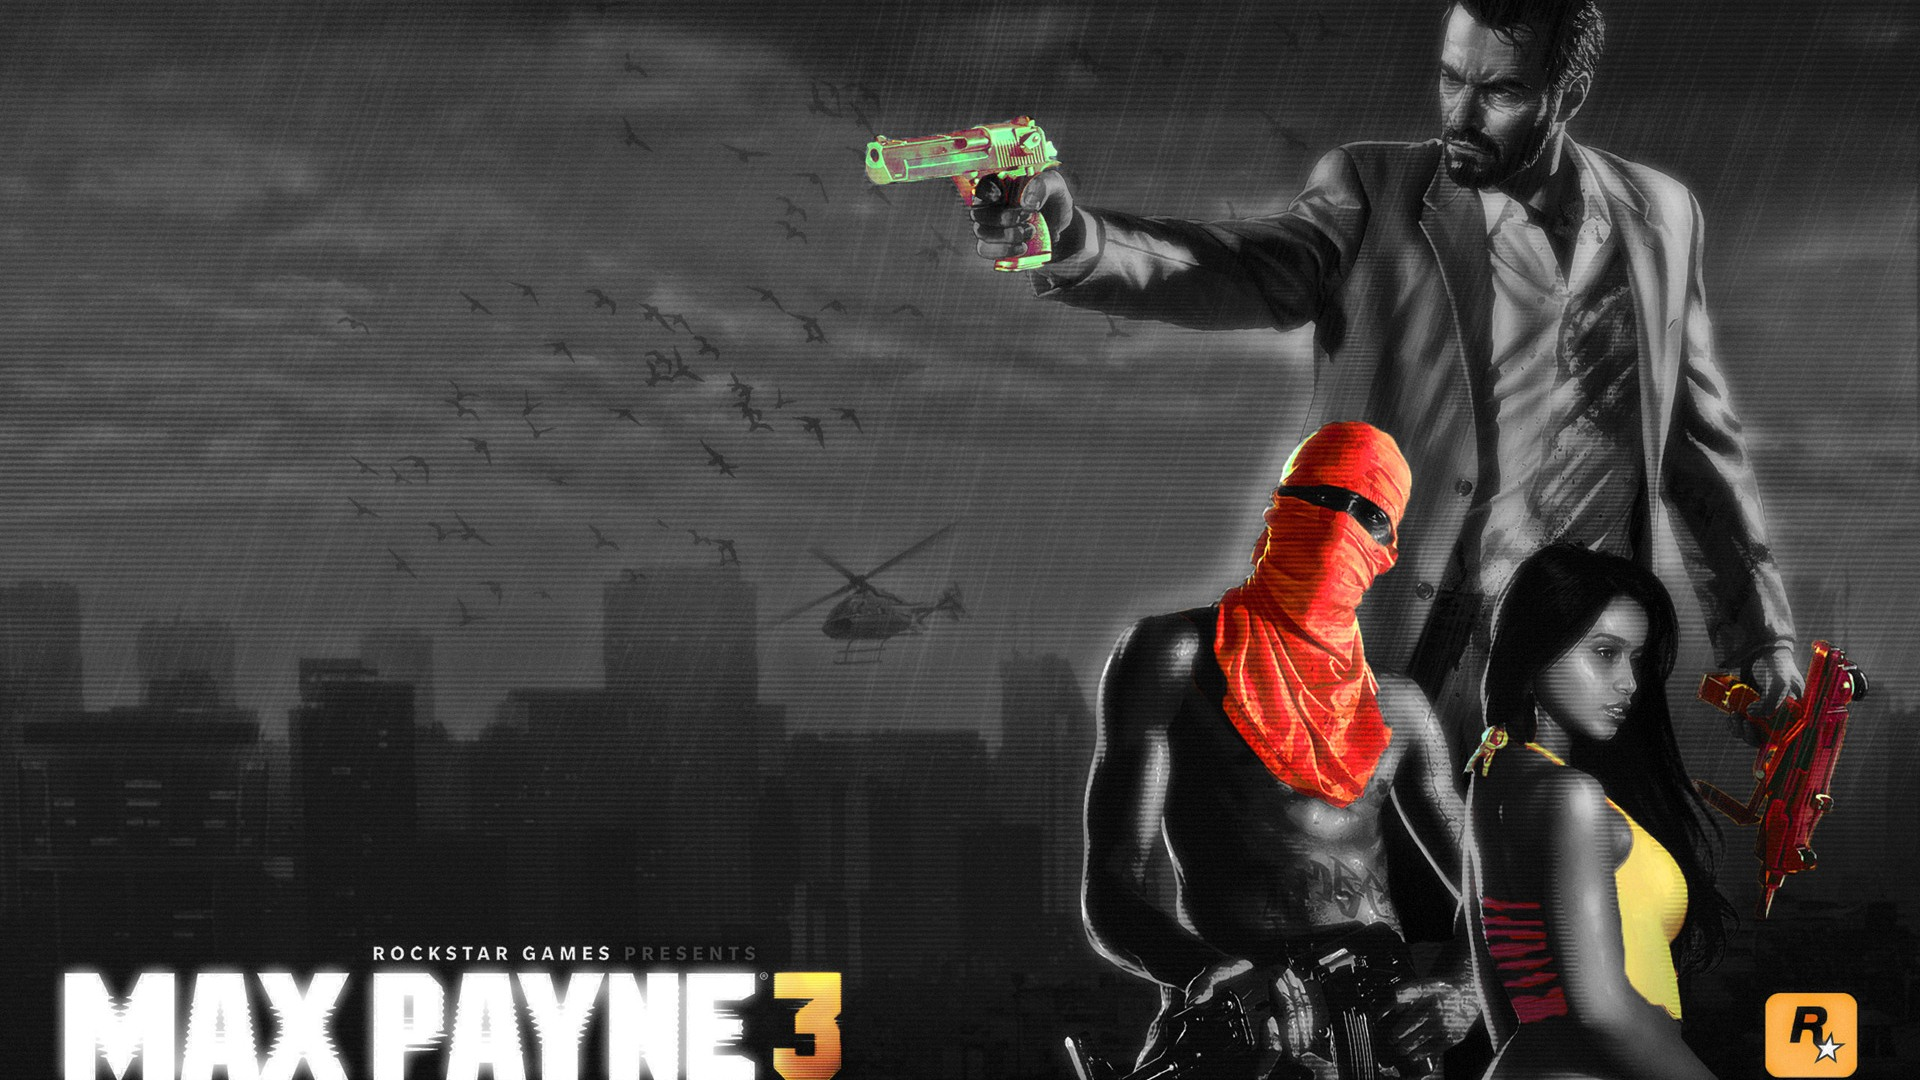 Max Payne 3 Hd Wallpapers 9 1920x1080 Wallpaper Download Max